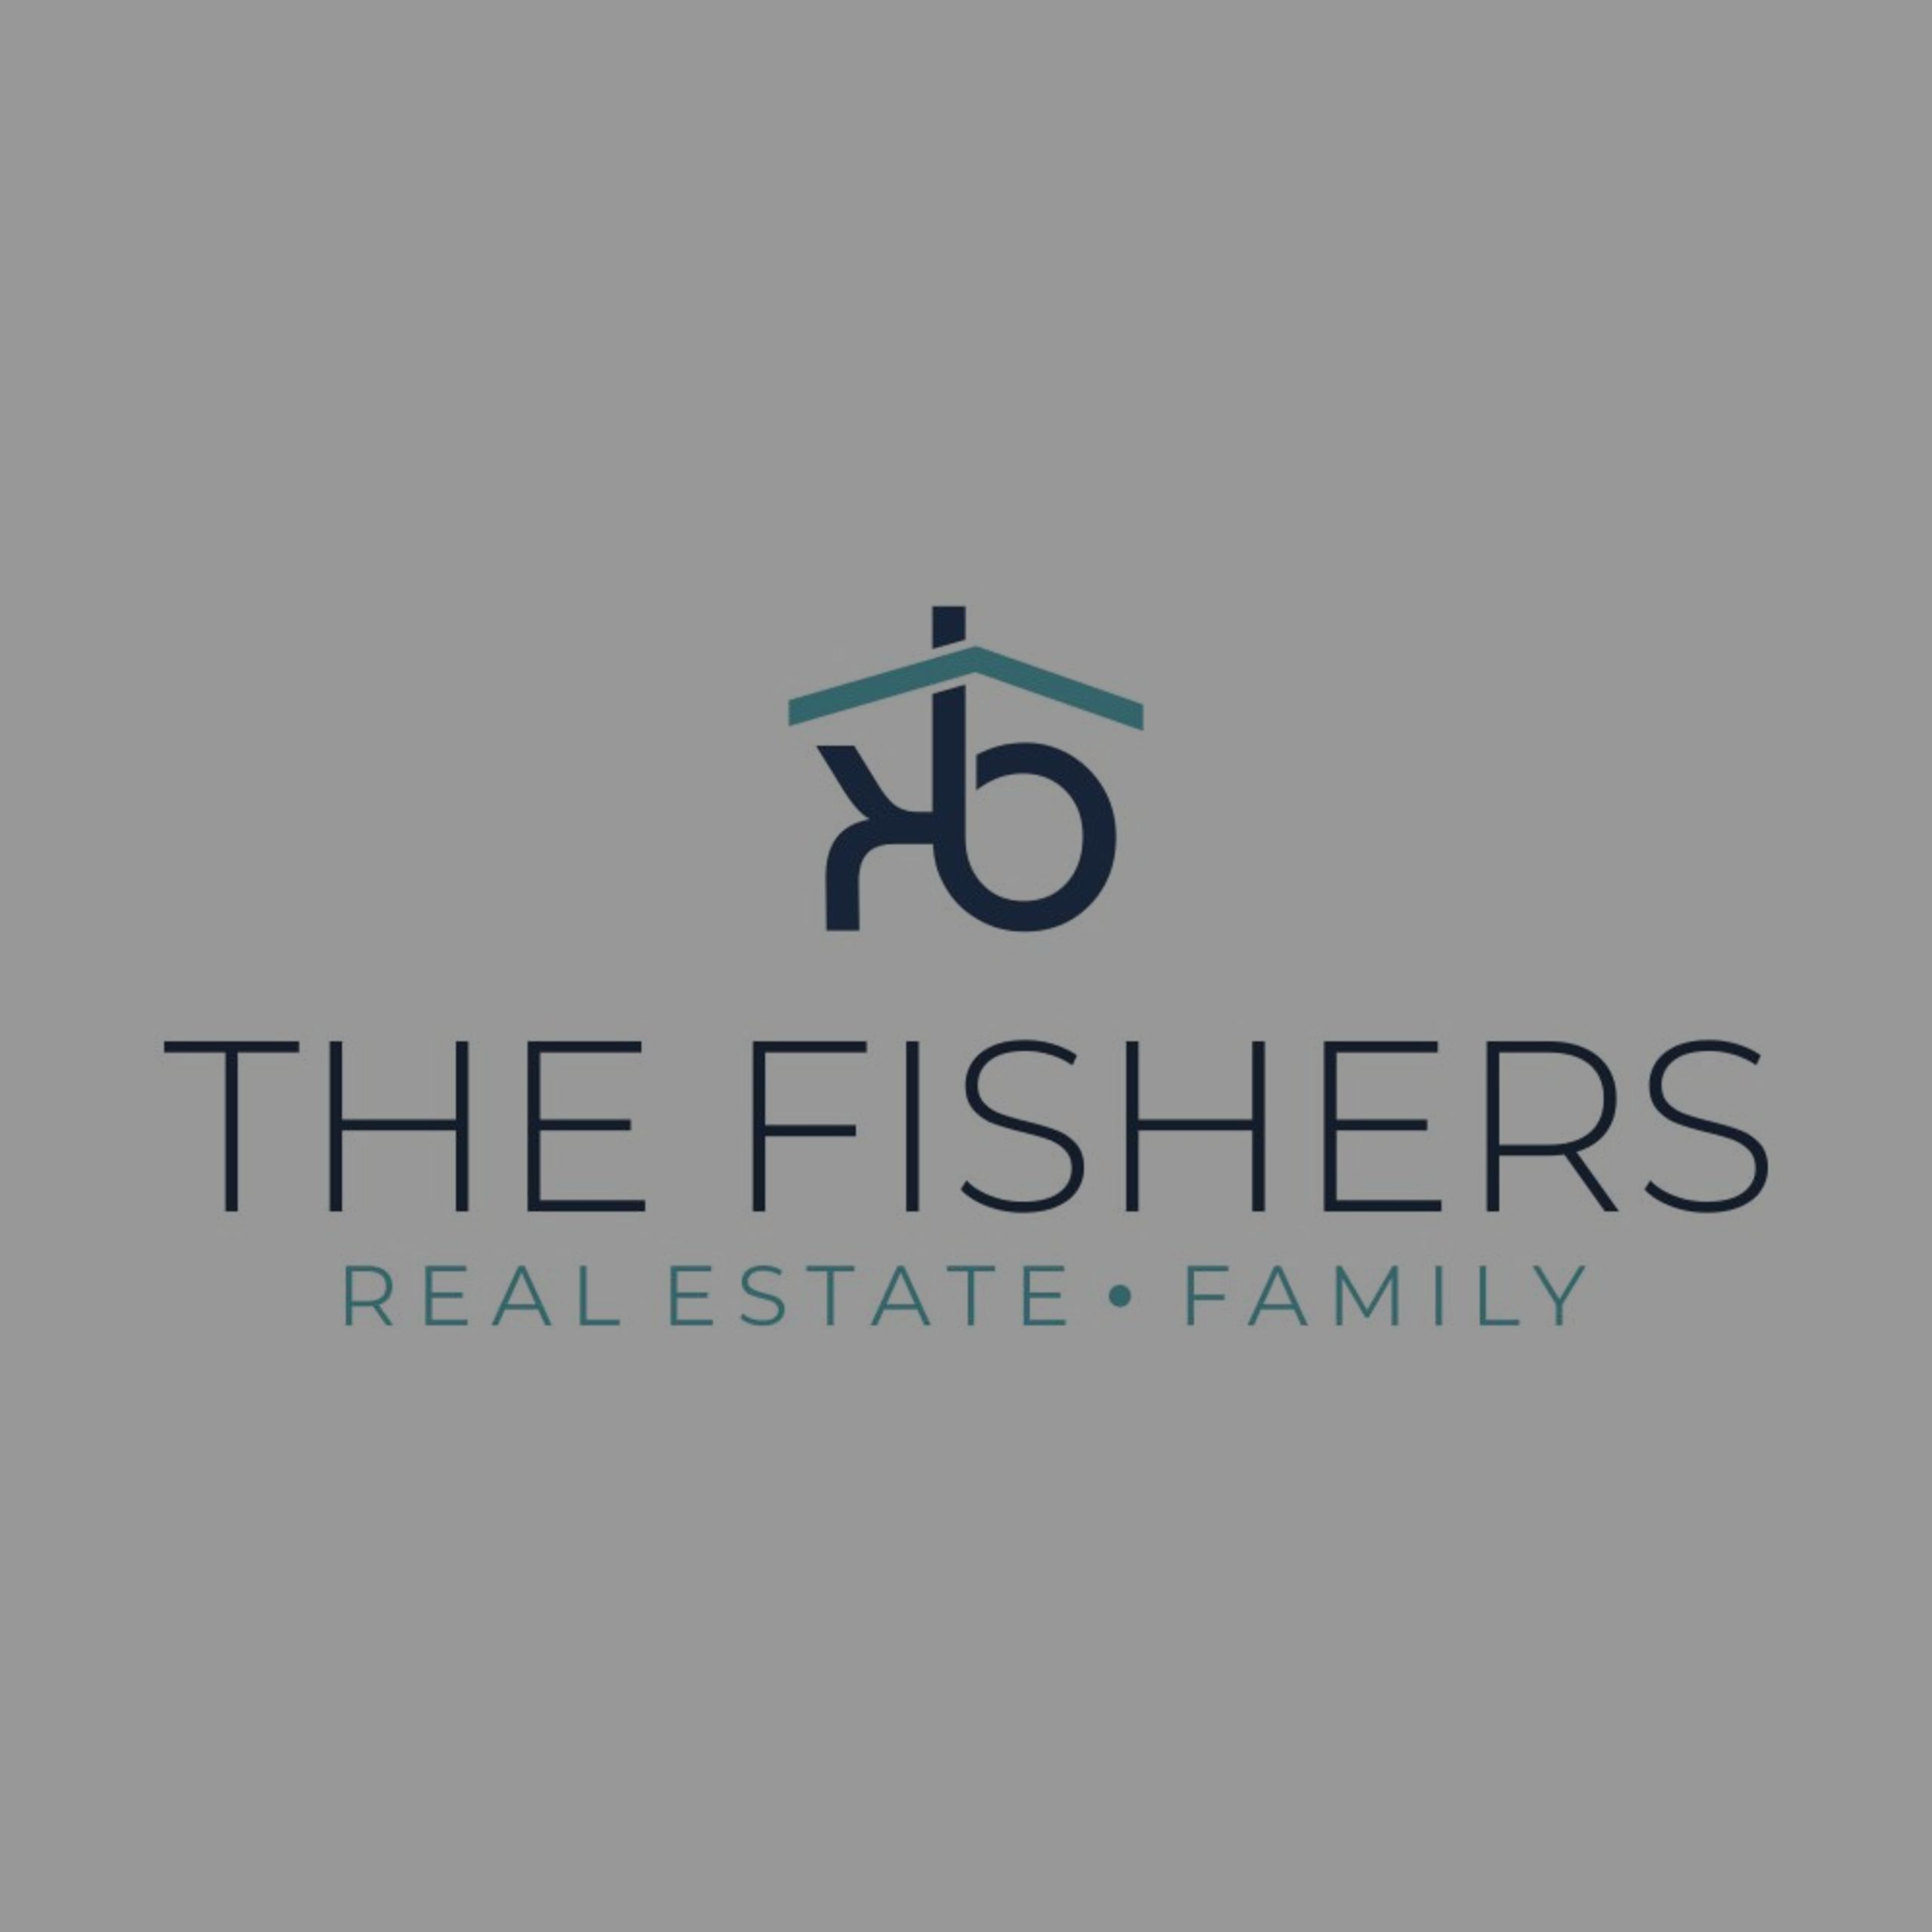 Kay Fisher and Associates is now The Fishers Real Estate Family!